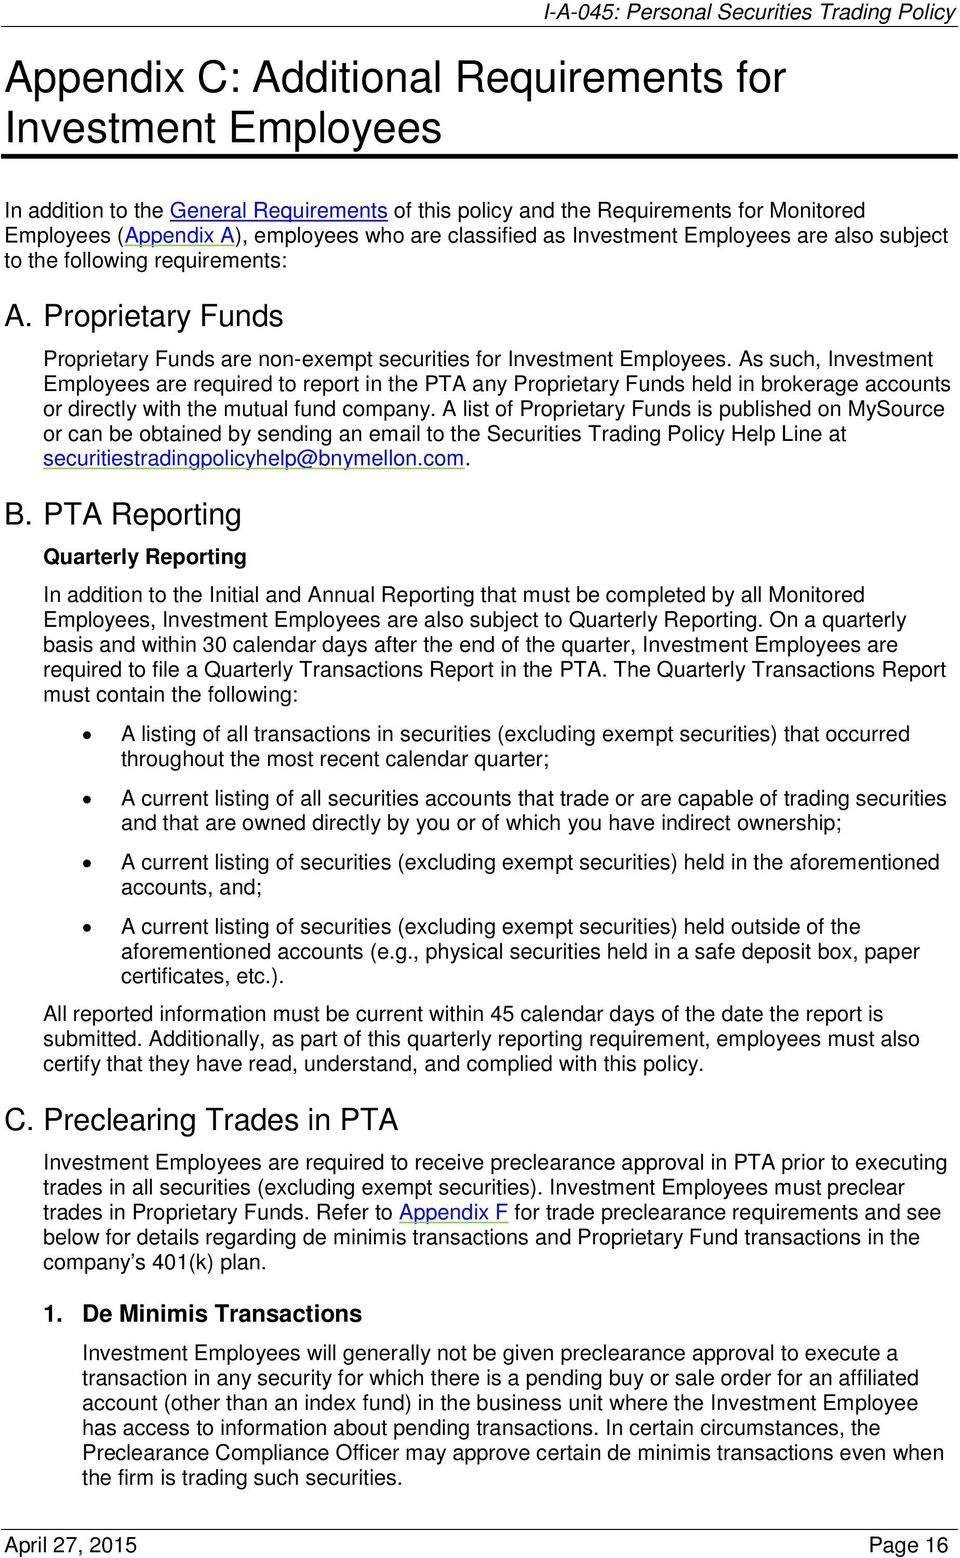 As such, Investment Employees are required to report in the PTA any Proprietary Funds held in brokerage accounts or directly with the mutual fund company.